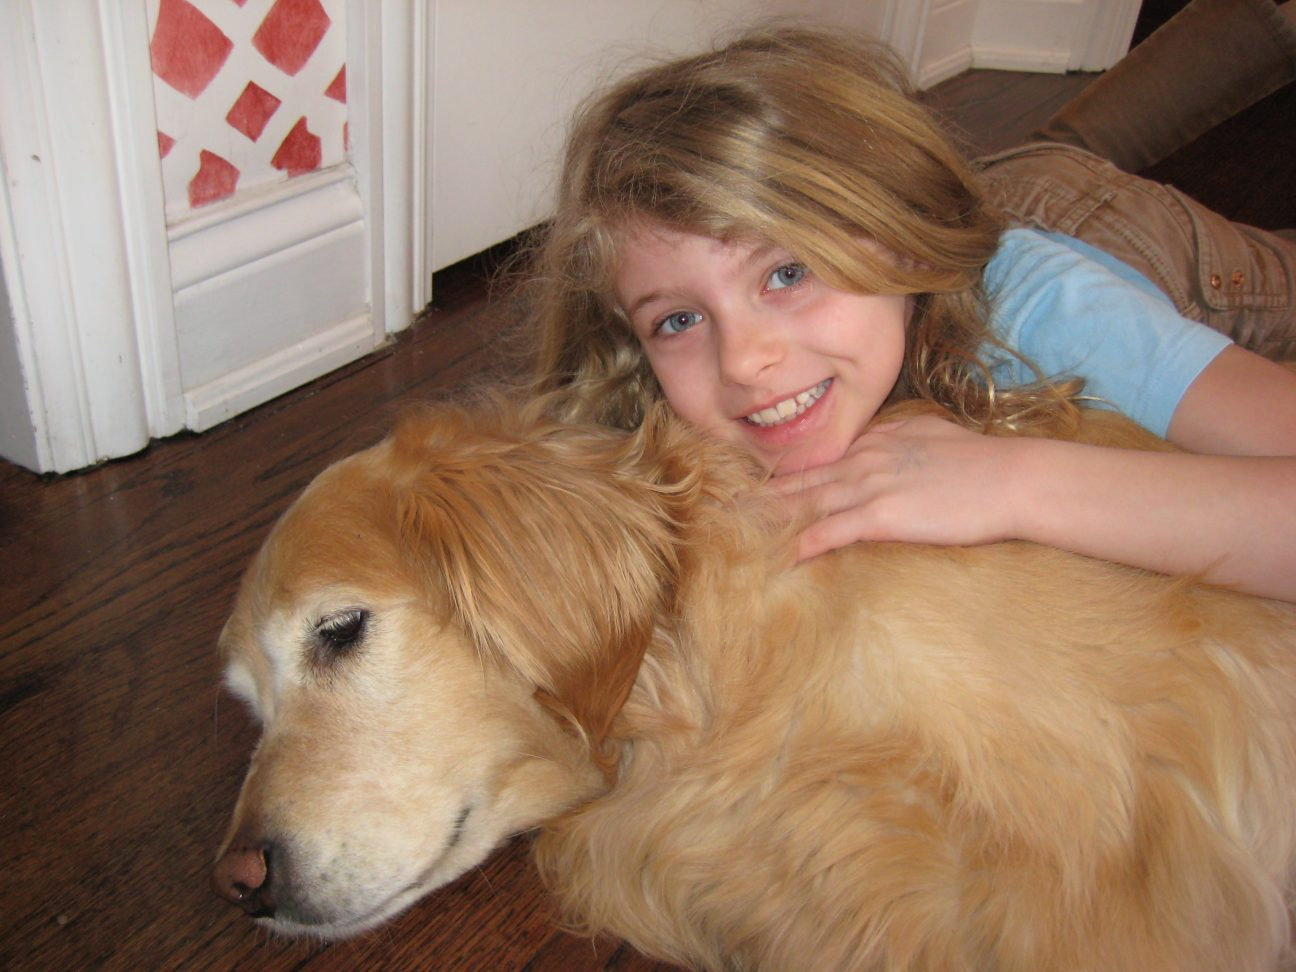 Scott Milligan, founder of PetCure Oncology photo of daughter and dog juliette